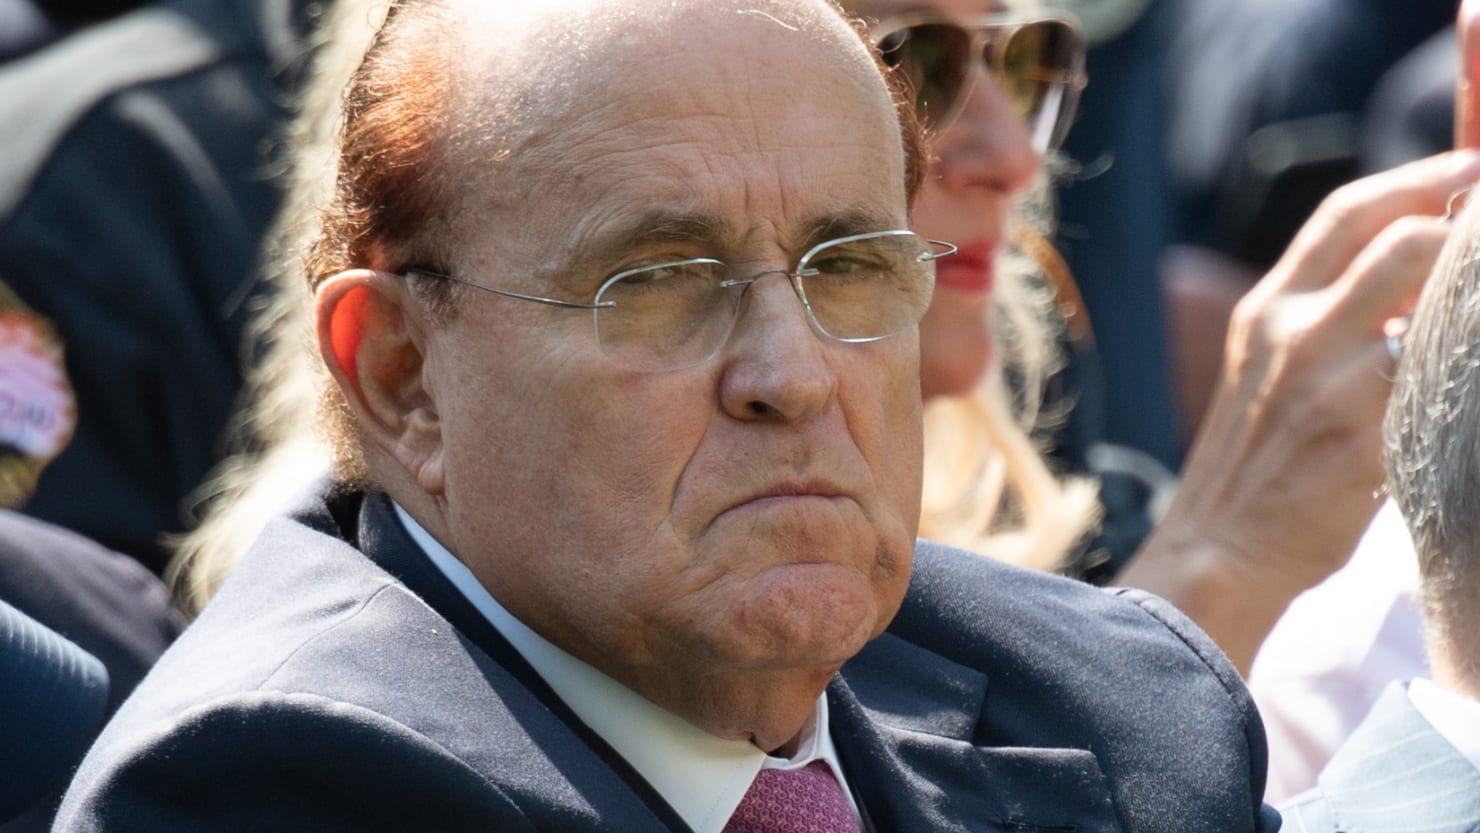 Rudy Giuliani: 'When This Is Over, I Will Be the Hero'